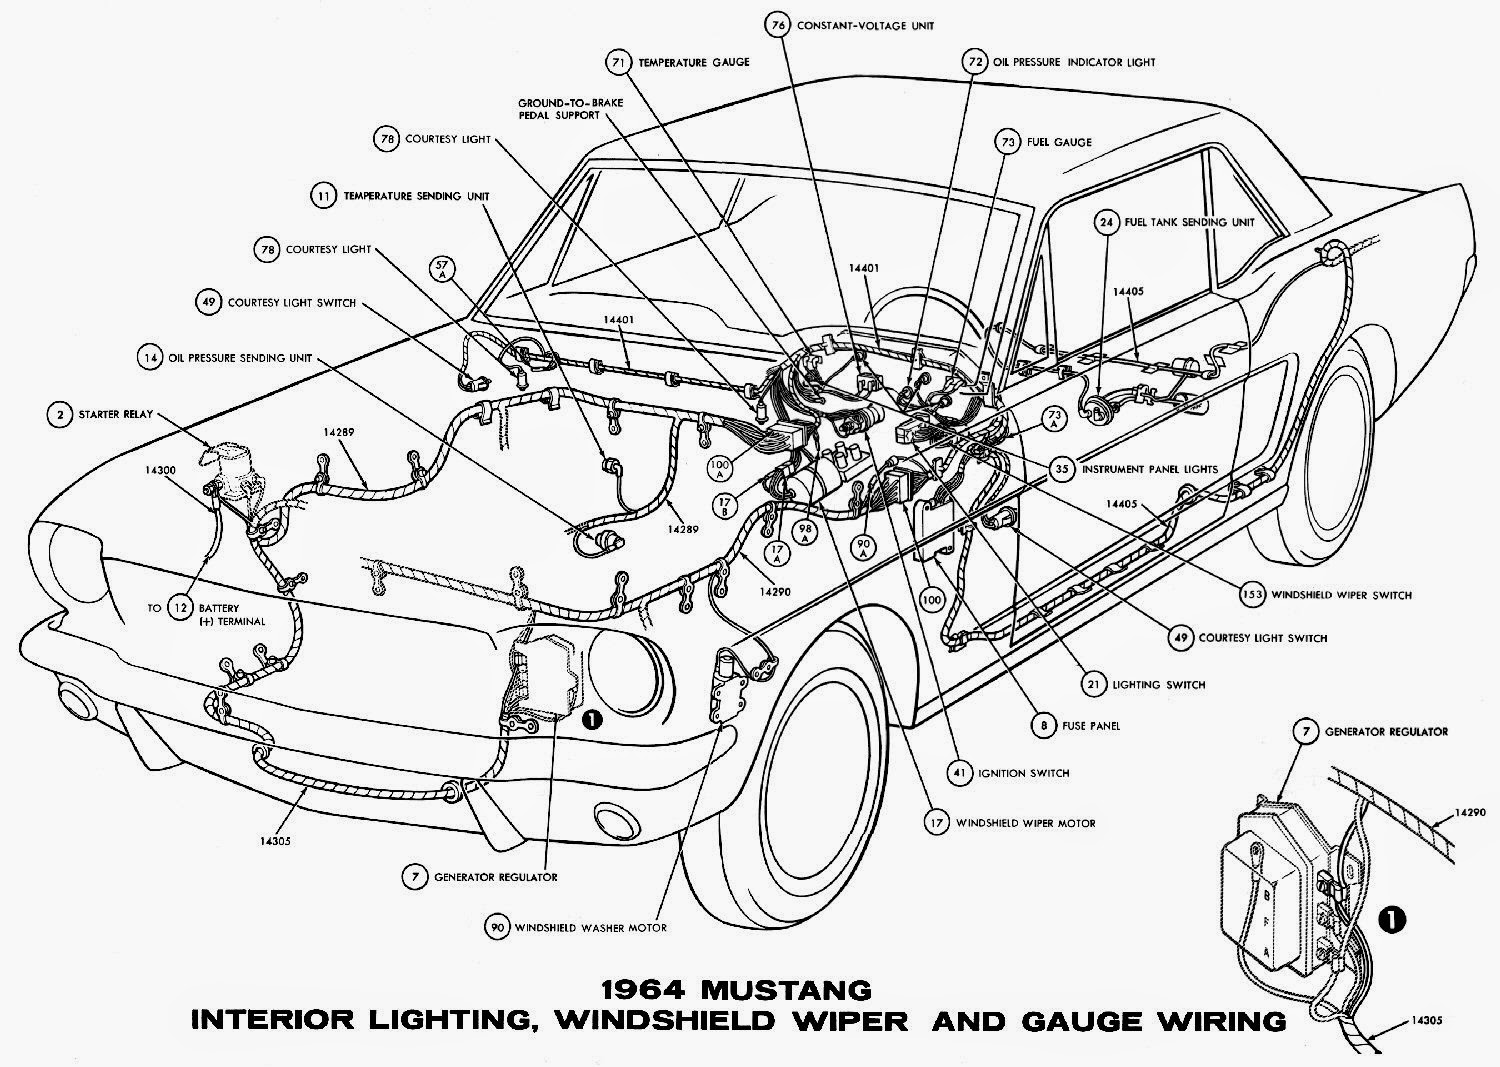 mustang wiring harness diagram along with wiring diagram on meke 1967 Pontiac Tempest Wiring Diagram 99 altima dash wiring diagram 99 get free image about for mustang wiring harness diagram along